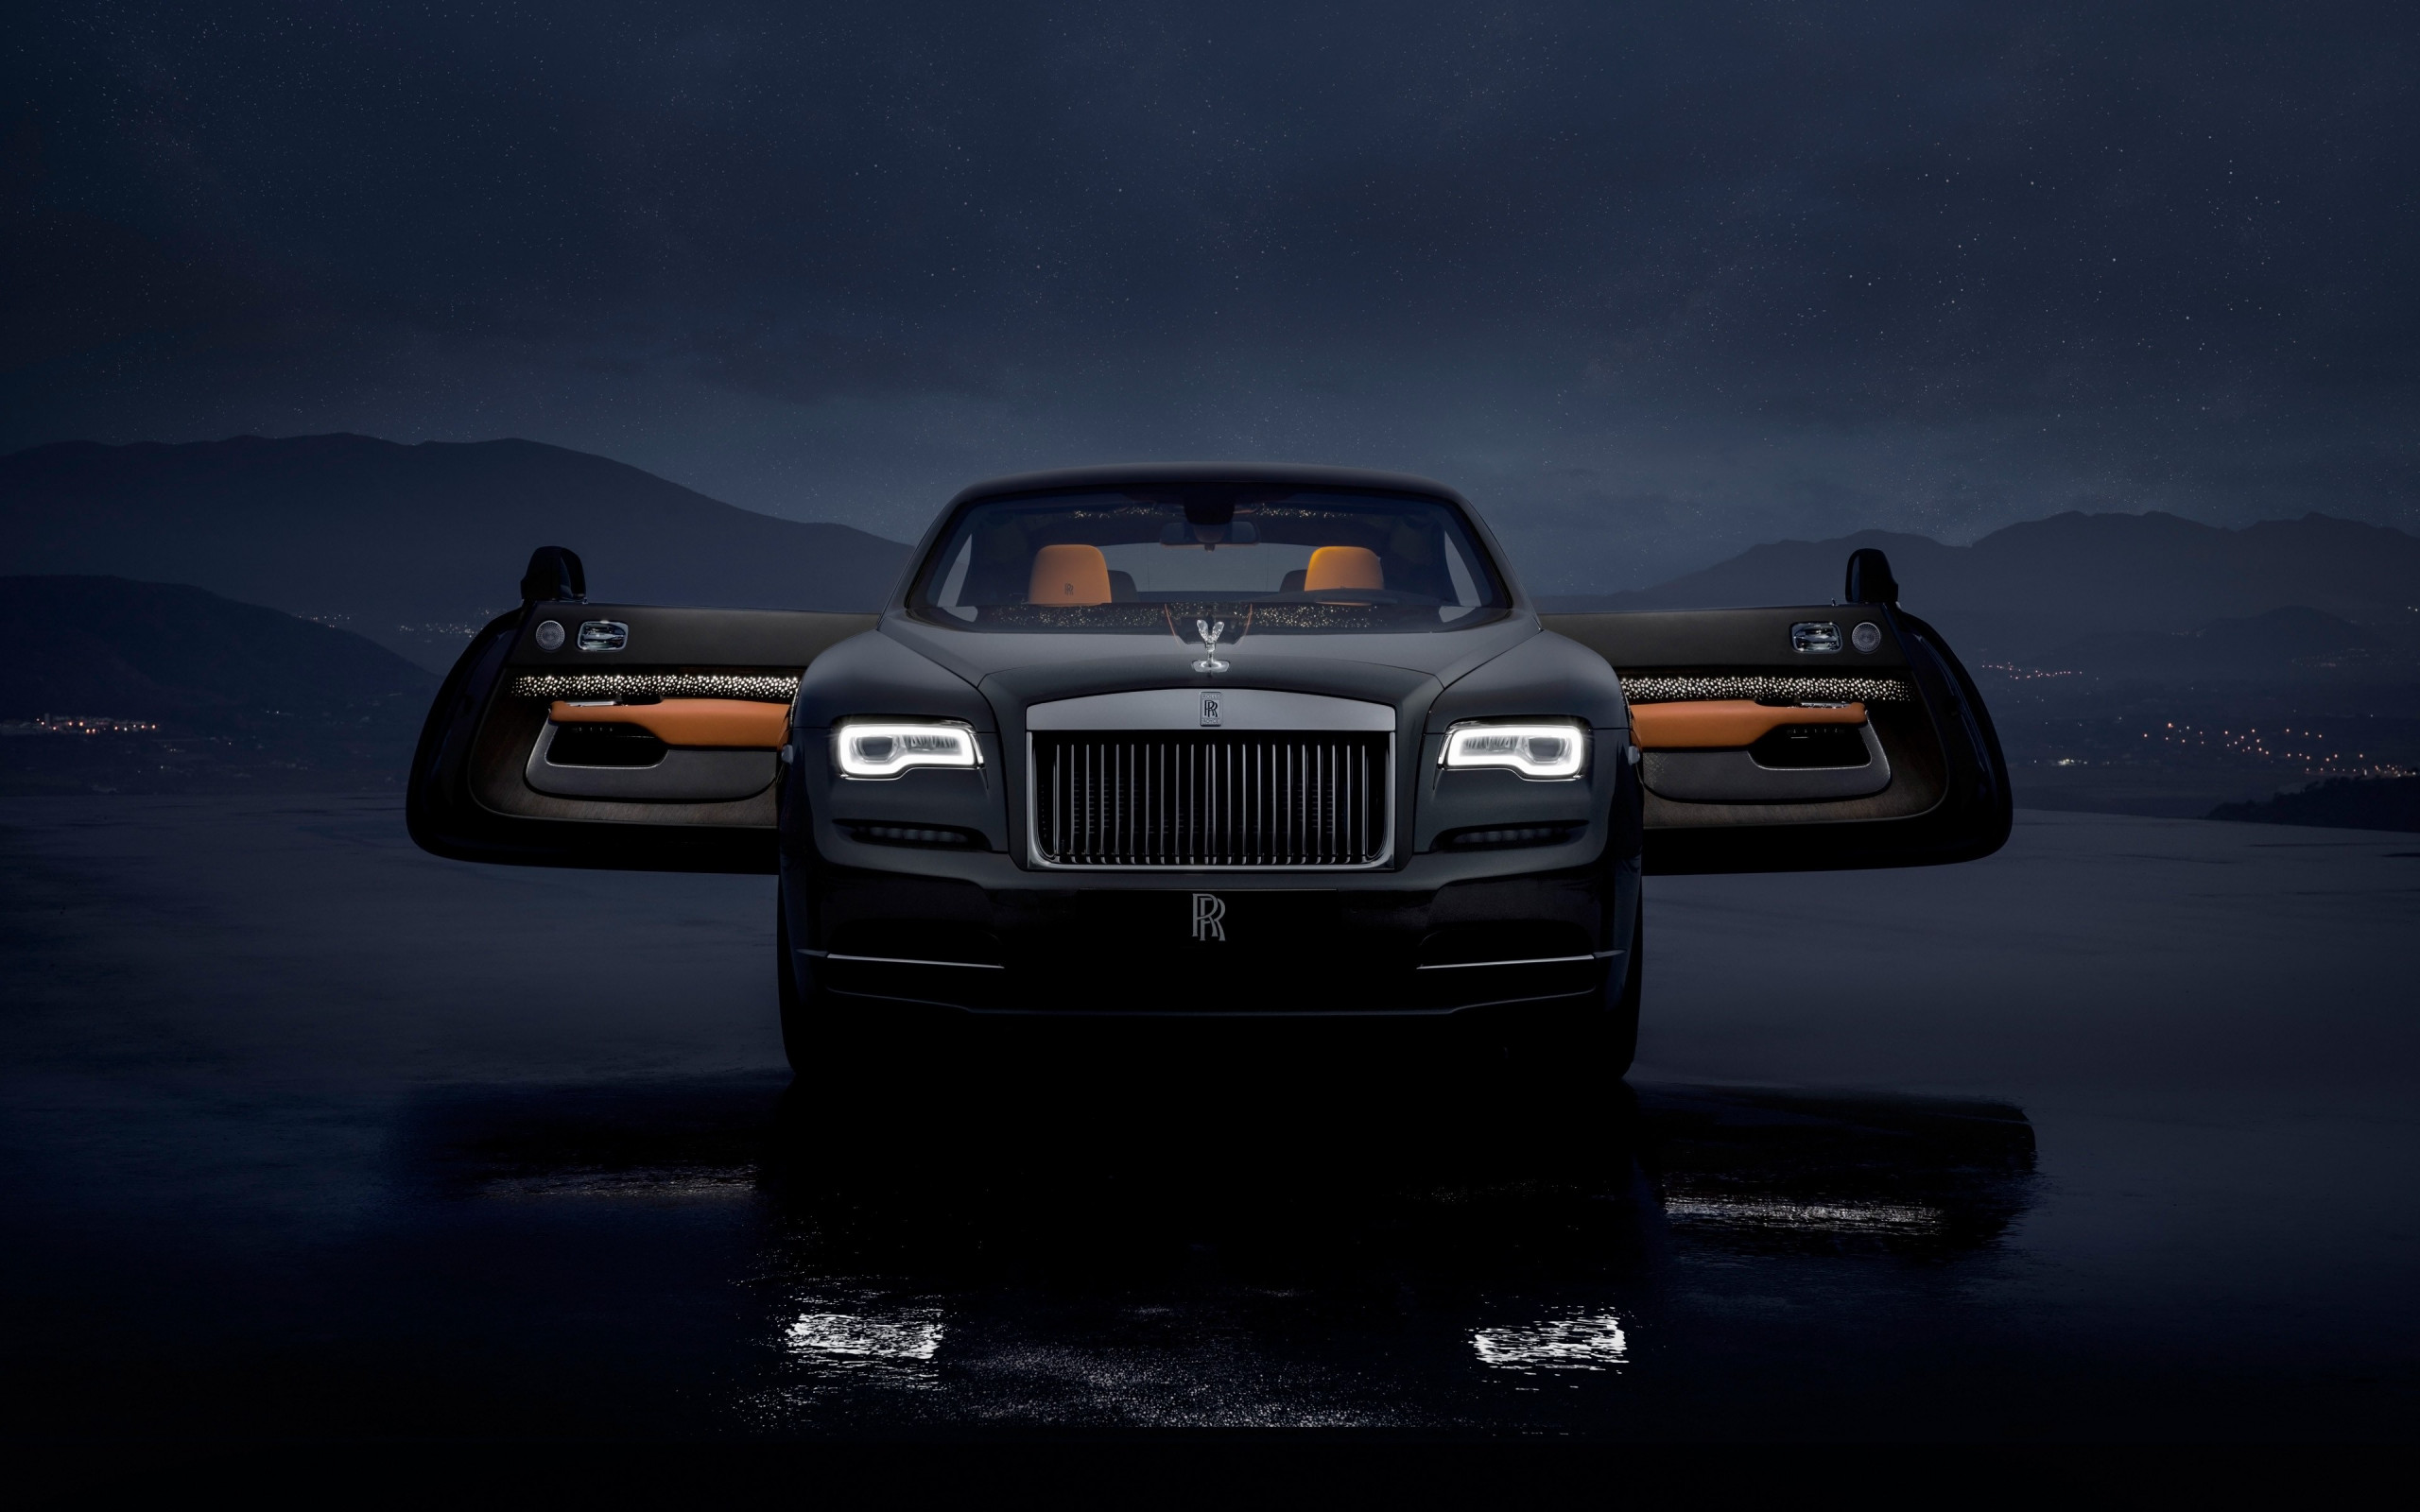 Rolls Royce Wraith Luminary Collection wallpaper 2560x1600